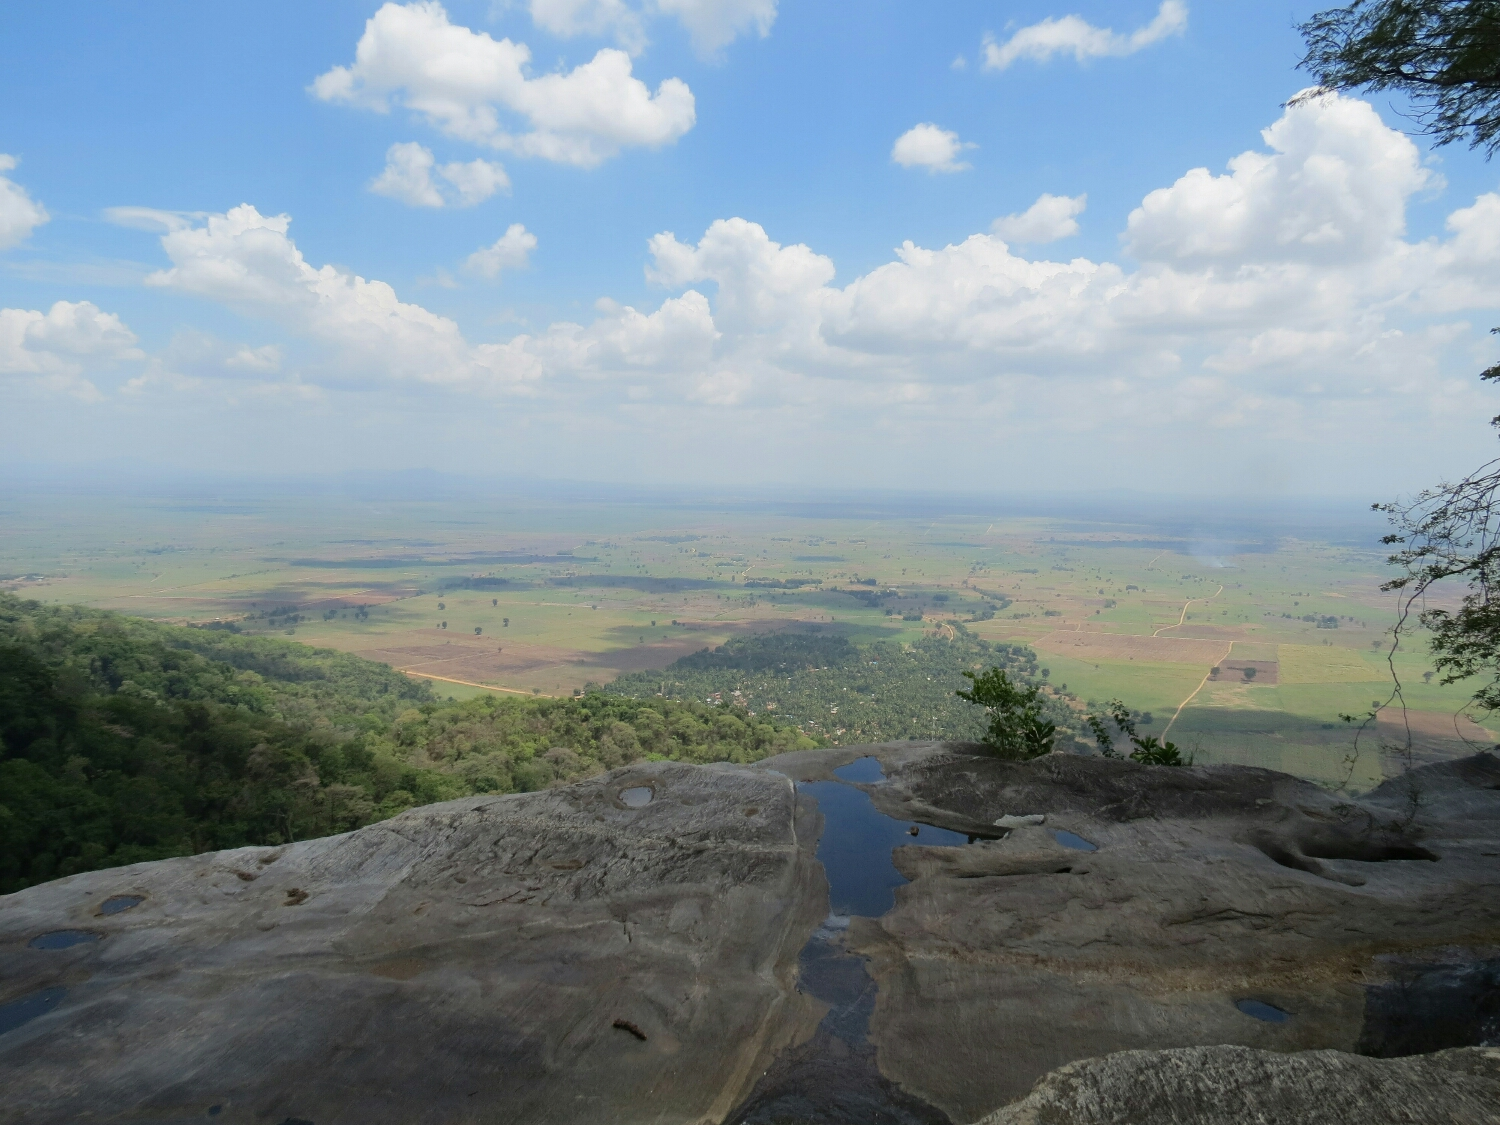 The view of the valley from the top of Sanje Falls hike.